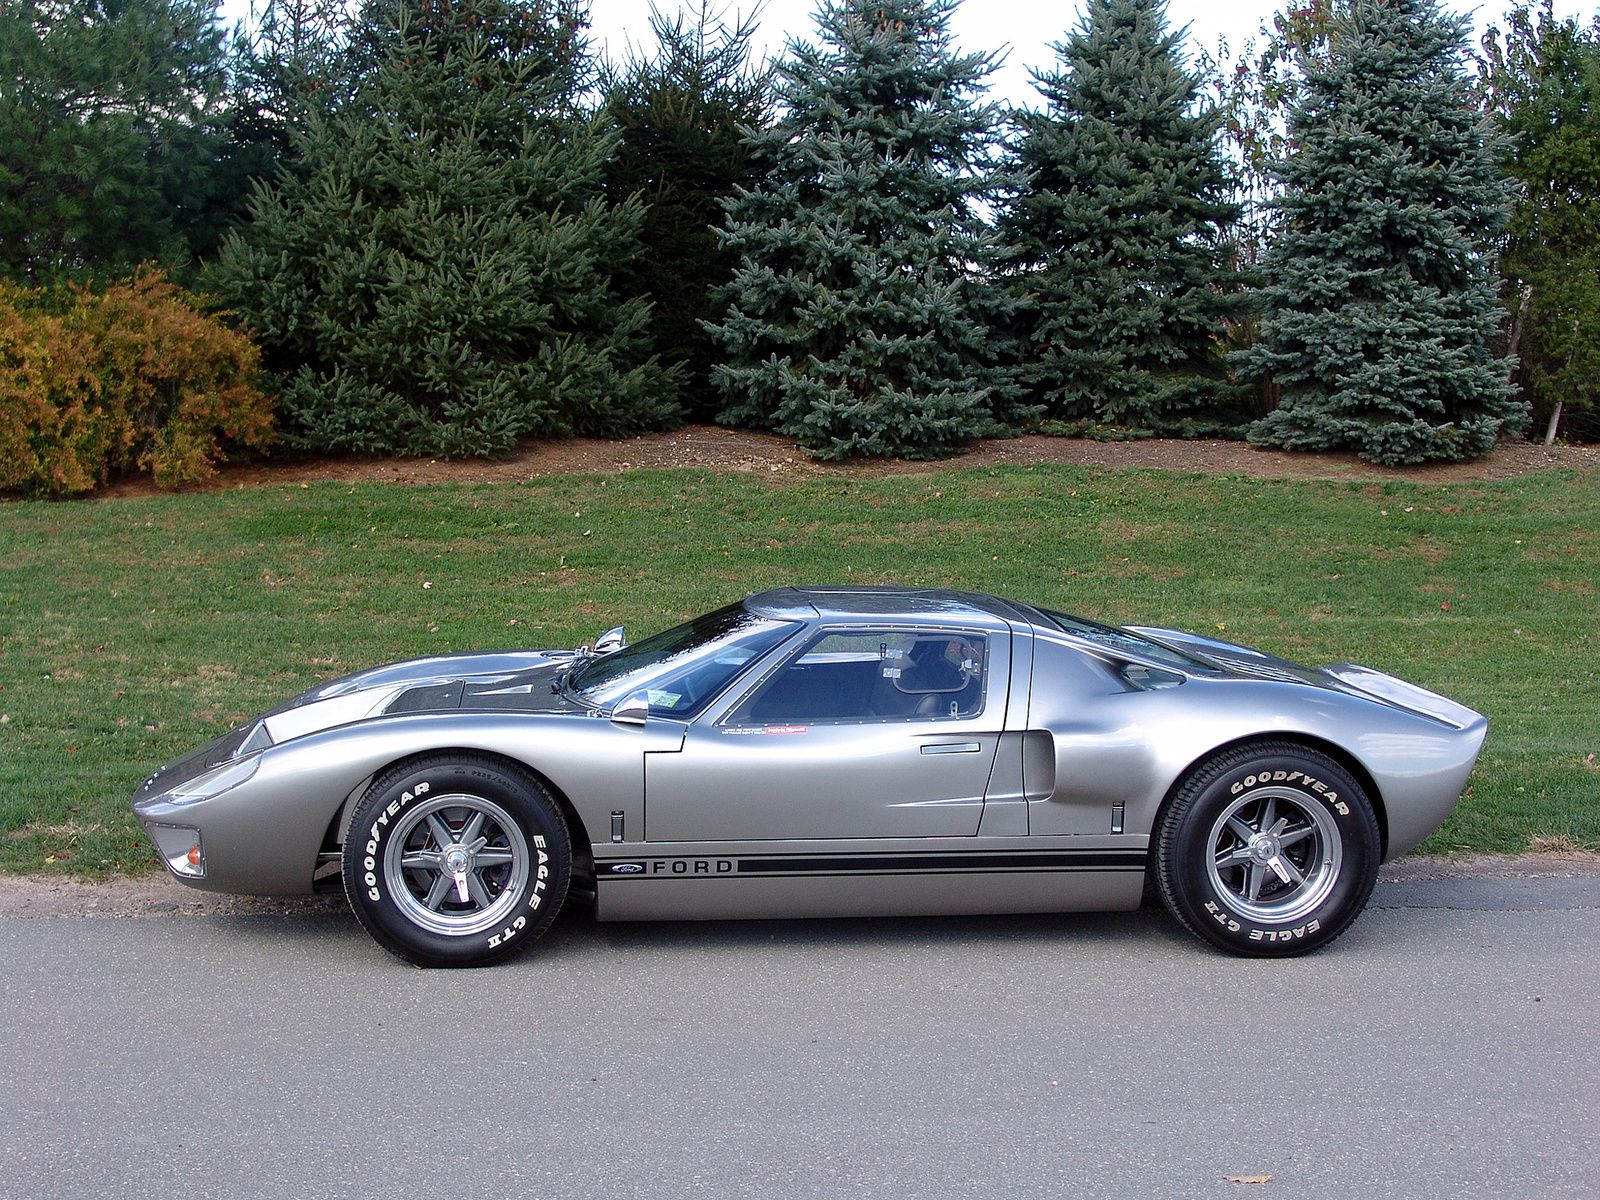 1966 Ford Gt40 Maintenance Restoration Of Old Vintage Vehicles The Material For New Cogs Casters Gears Pads Could Be Cast Polyamide Whi Ford Gt40 Gt40 Ford Gt